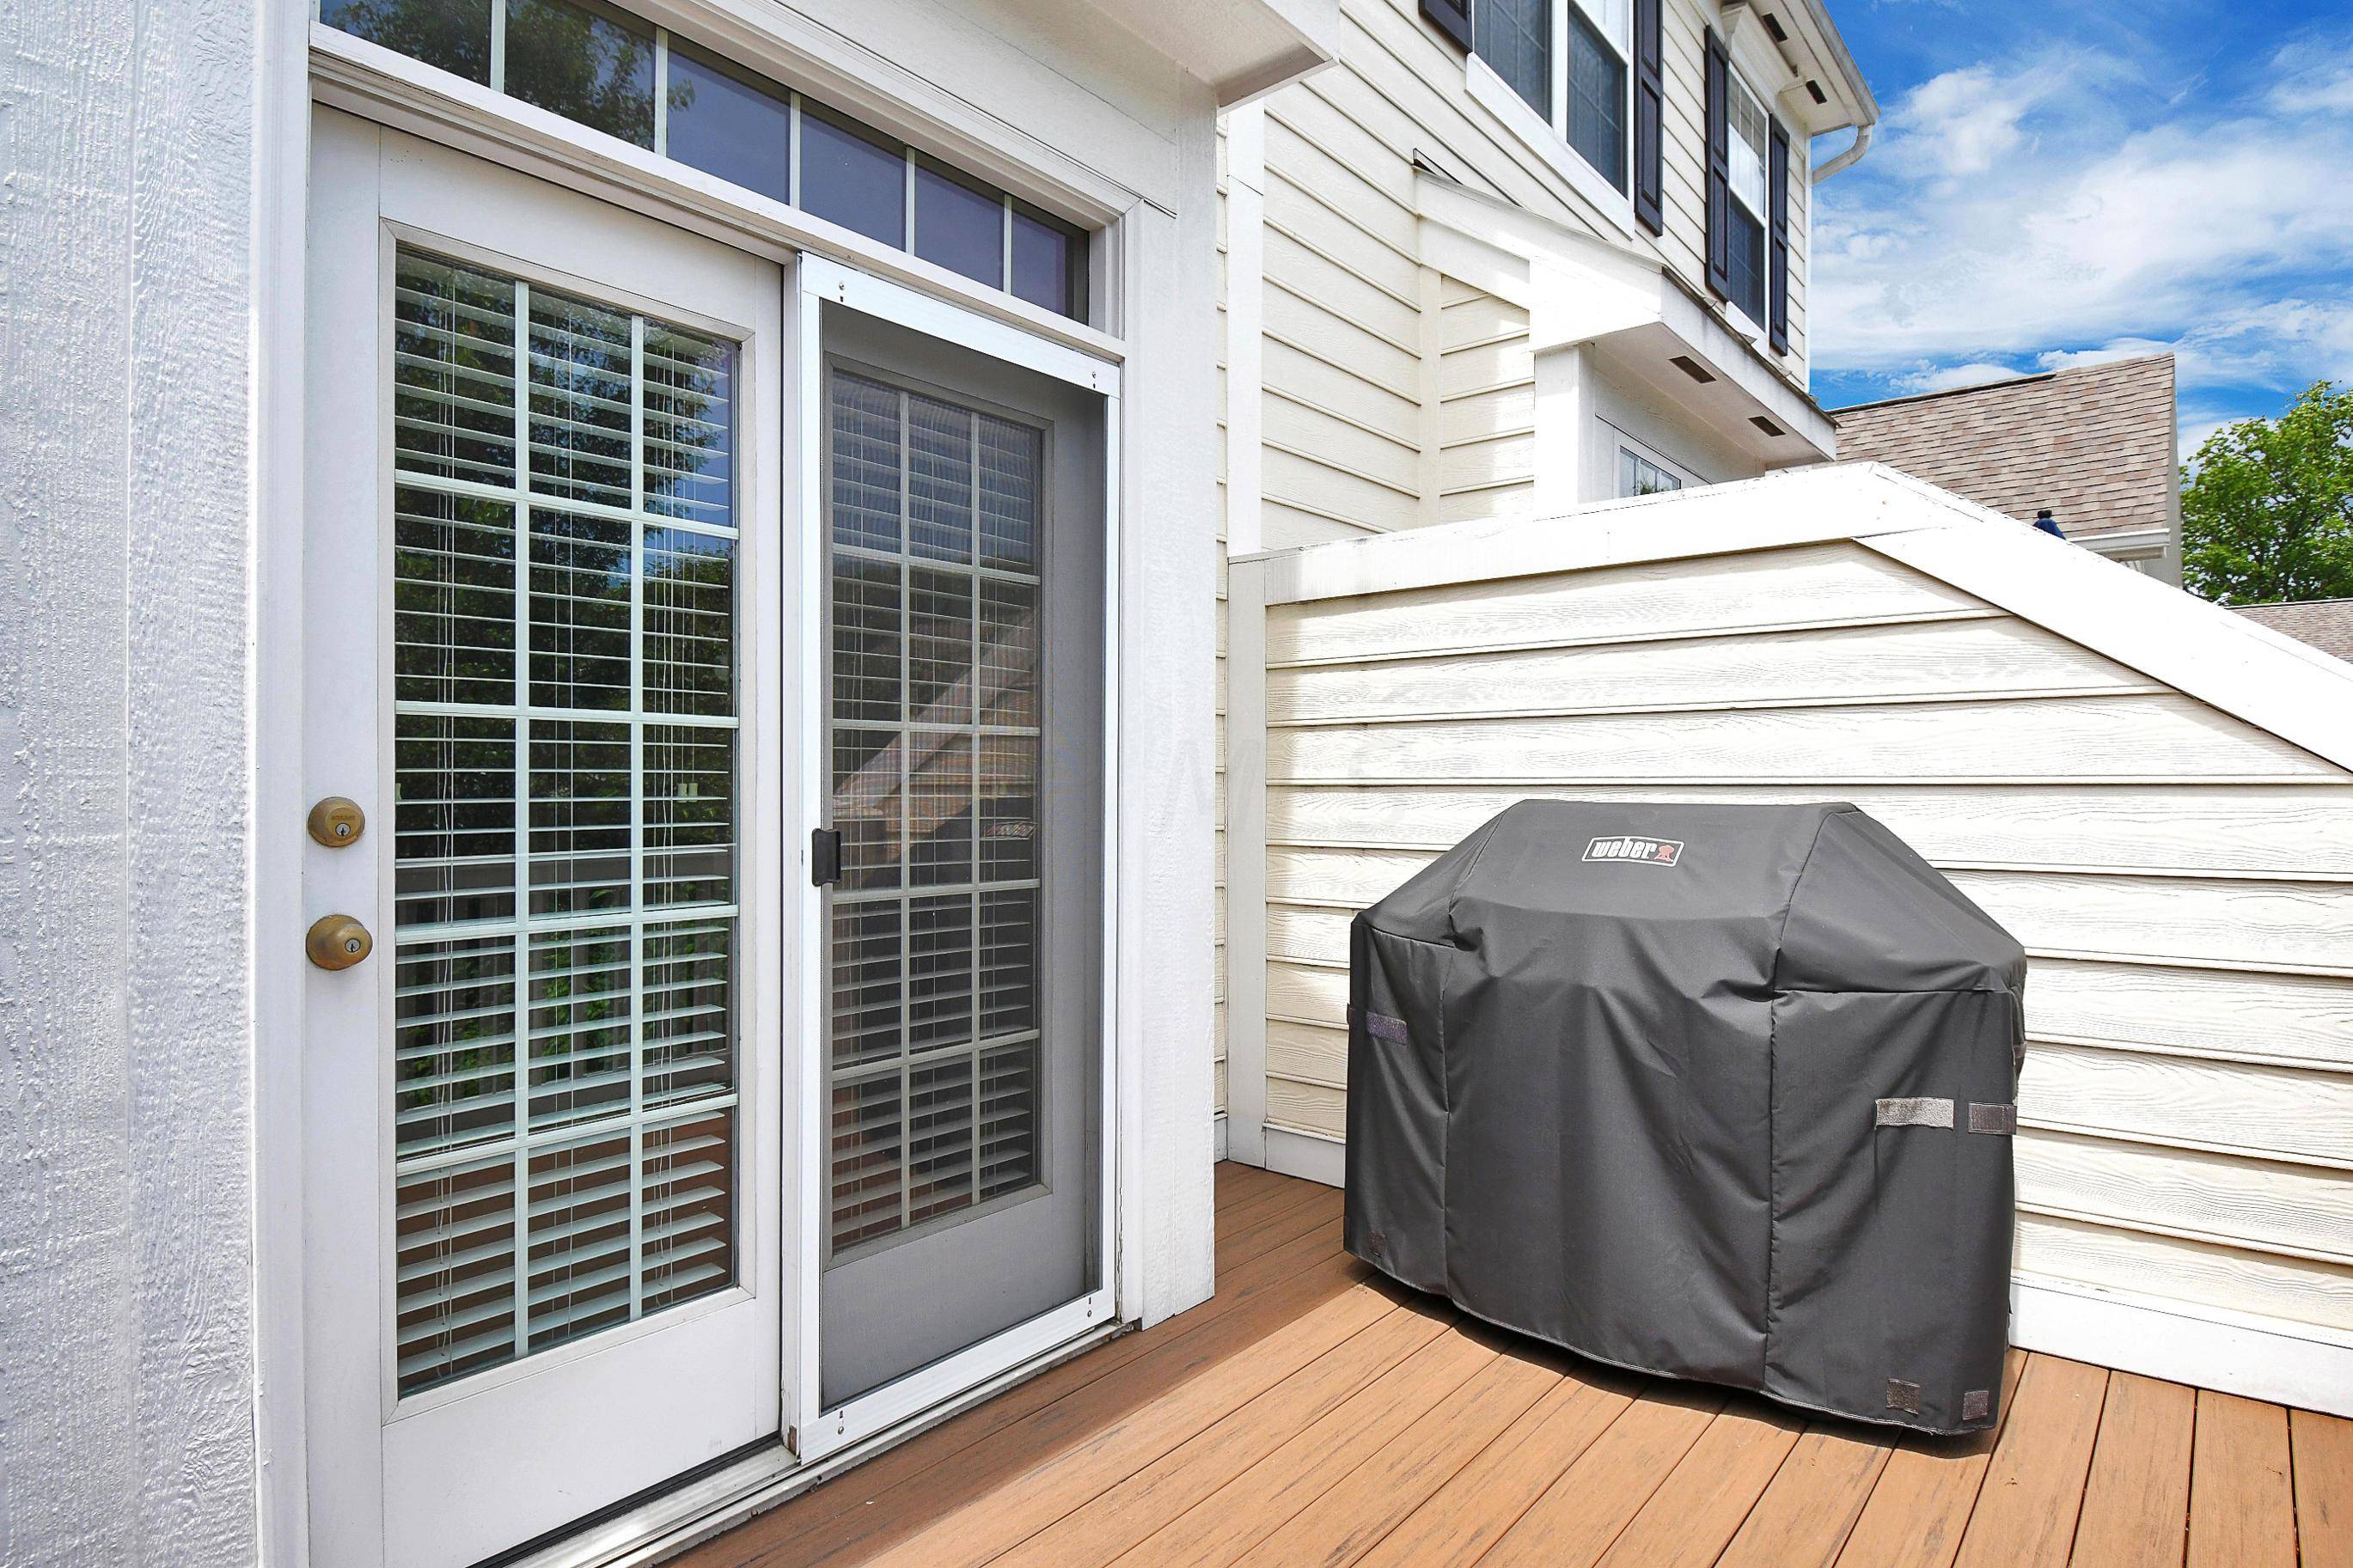 French Doors lead to Deck